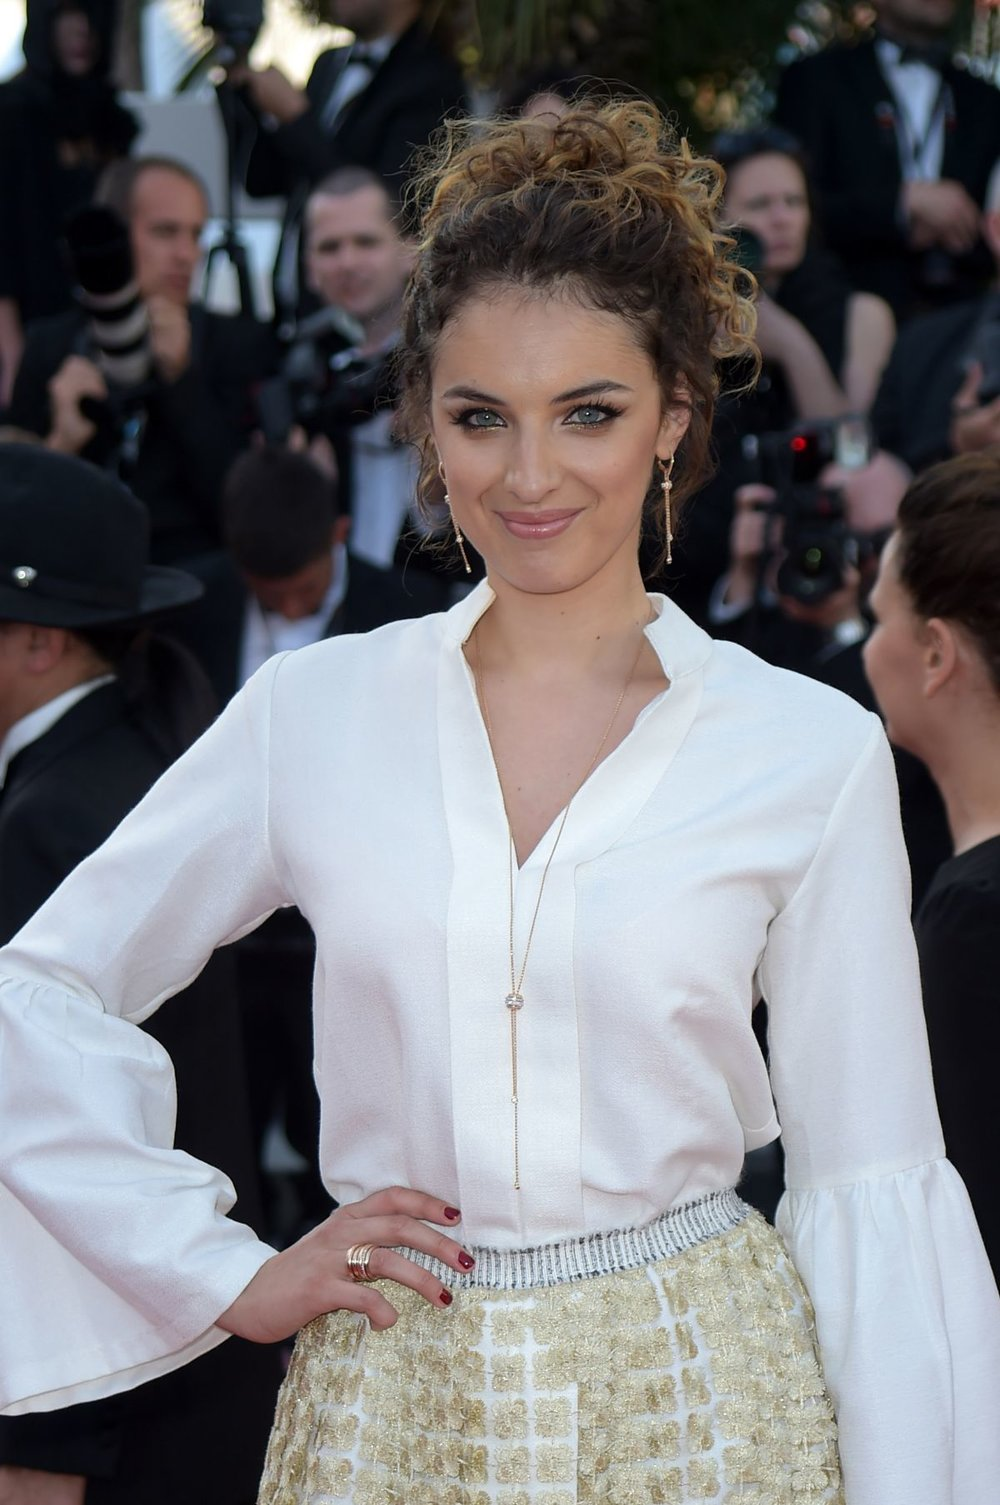 camille-lavabre-at-ash-is-purest-white-premiere-at-cannes-film-festival-05-11-2018-1.jpg